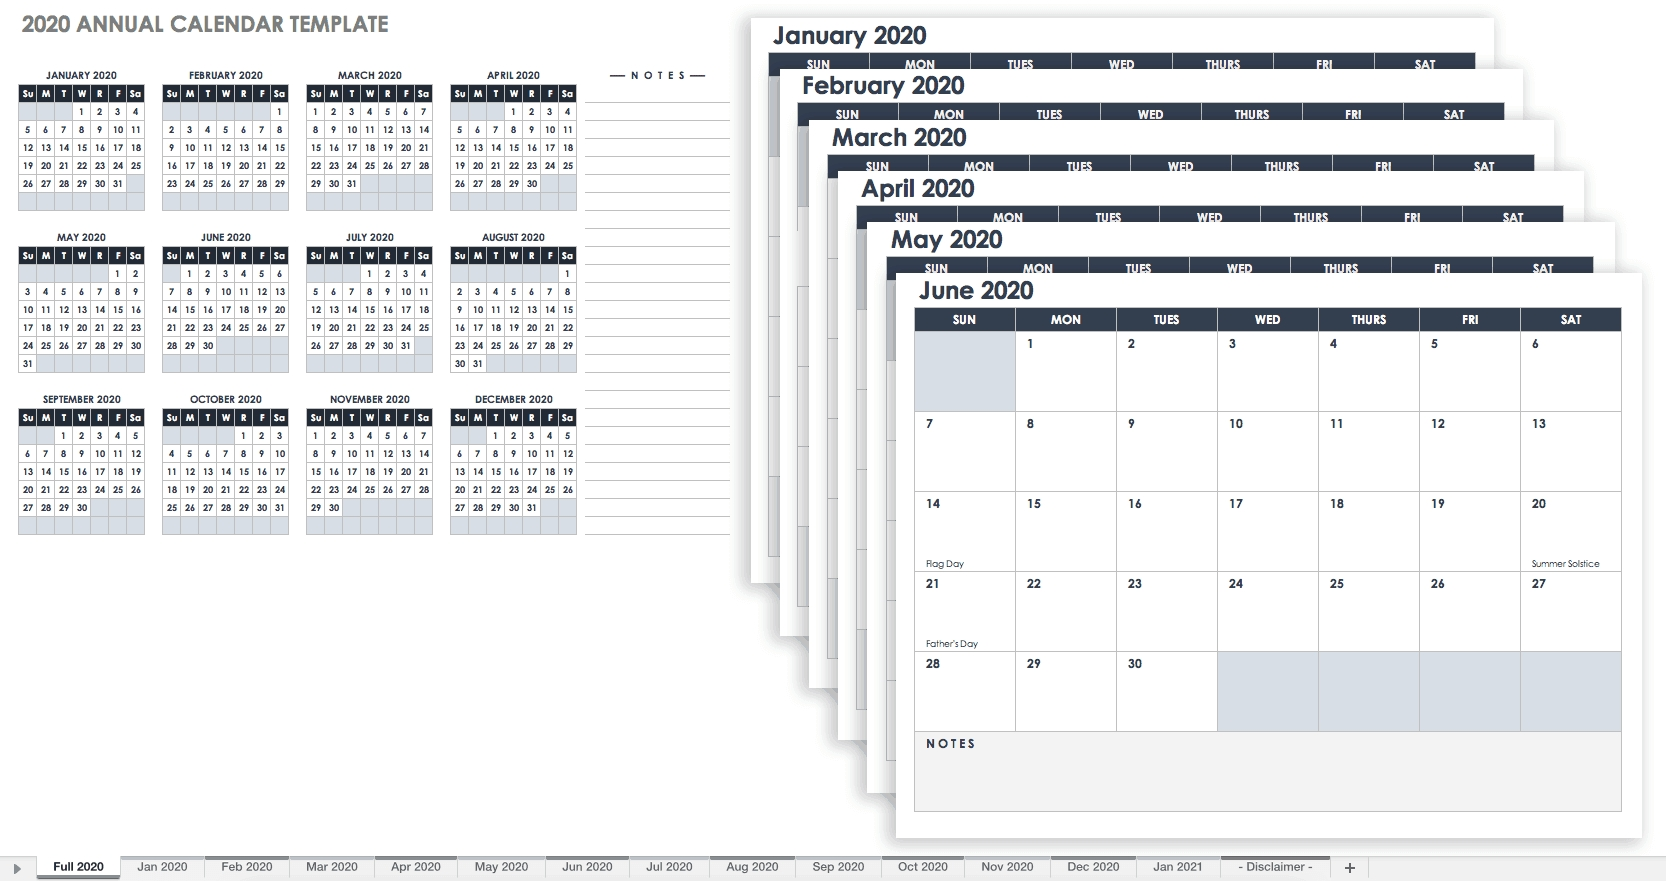 Free, Printable Excel Calendar Templates For 2019 & On  2020 Calendar Template Free 3 Months Per Page